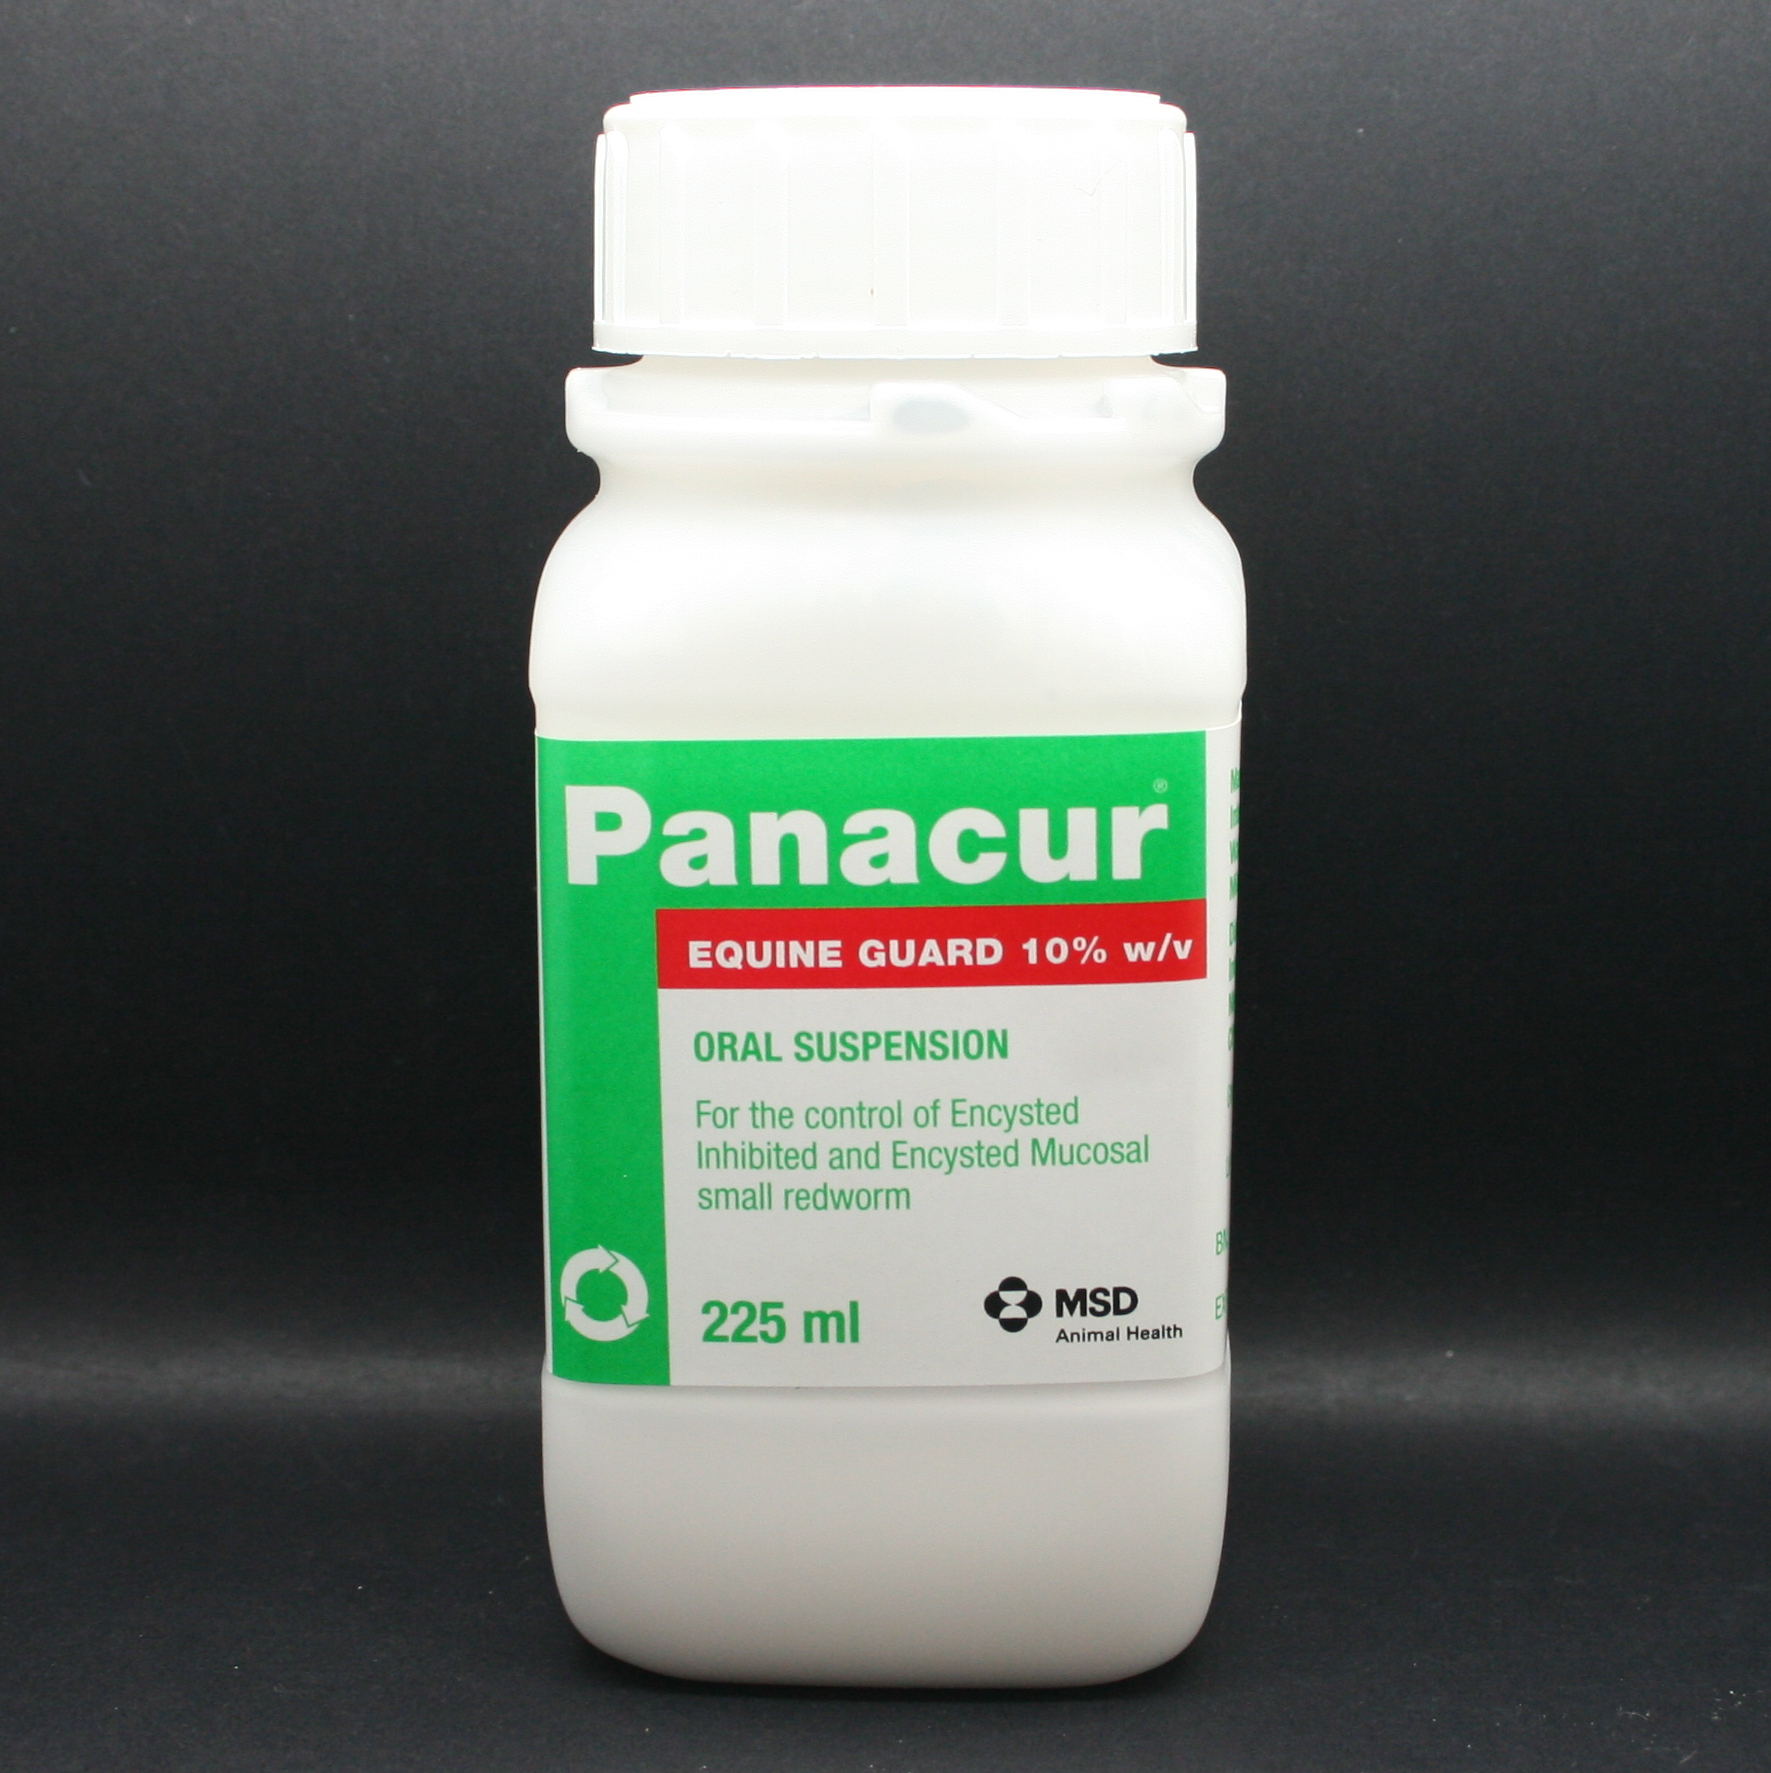 Panacur Equine Guard 10% Suspension 225ml